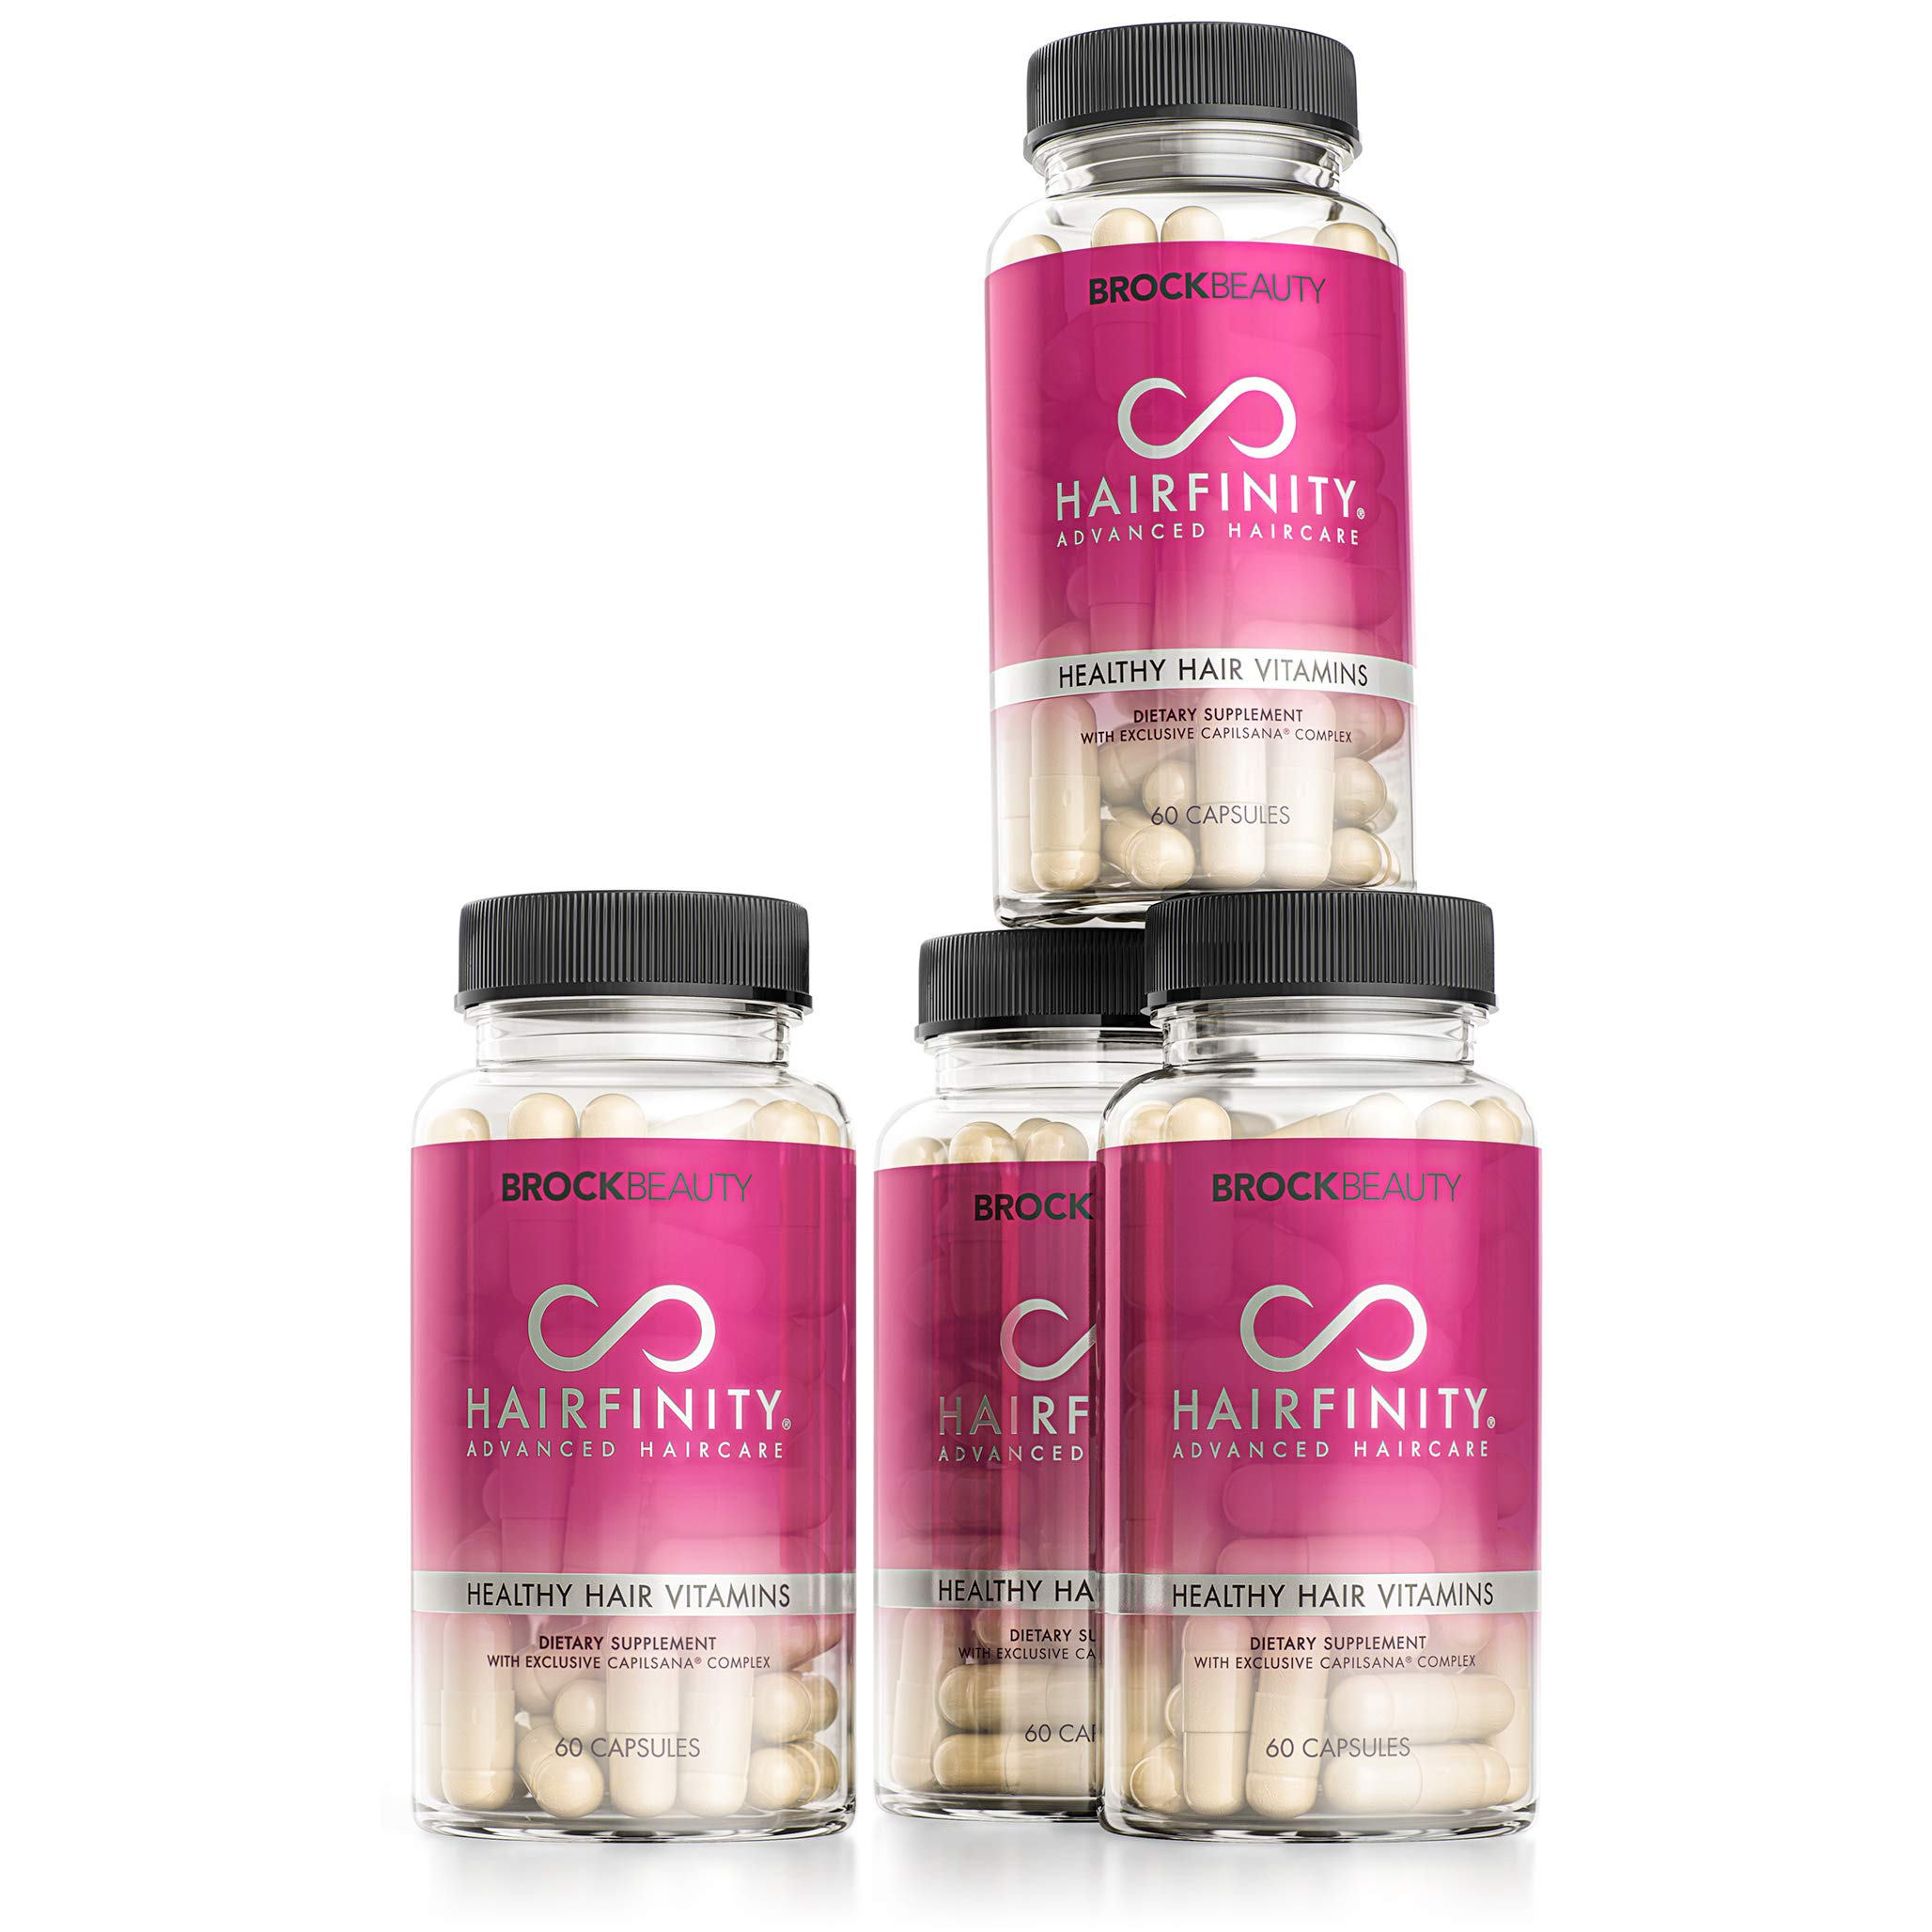 Hairfinity Hair Vitamins - Scientifically Formulated with Biotin, Amino Acids, and a Vitamin Supplement That Helps Support Hair Growth - Vegan - 240 Veggie Capsules (4 Month Supply)